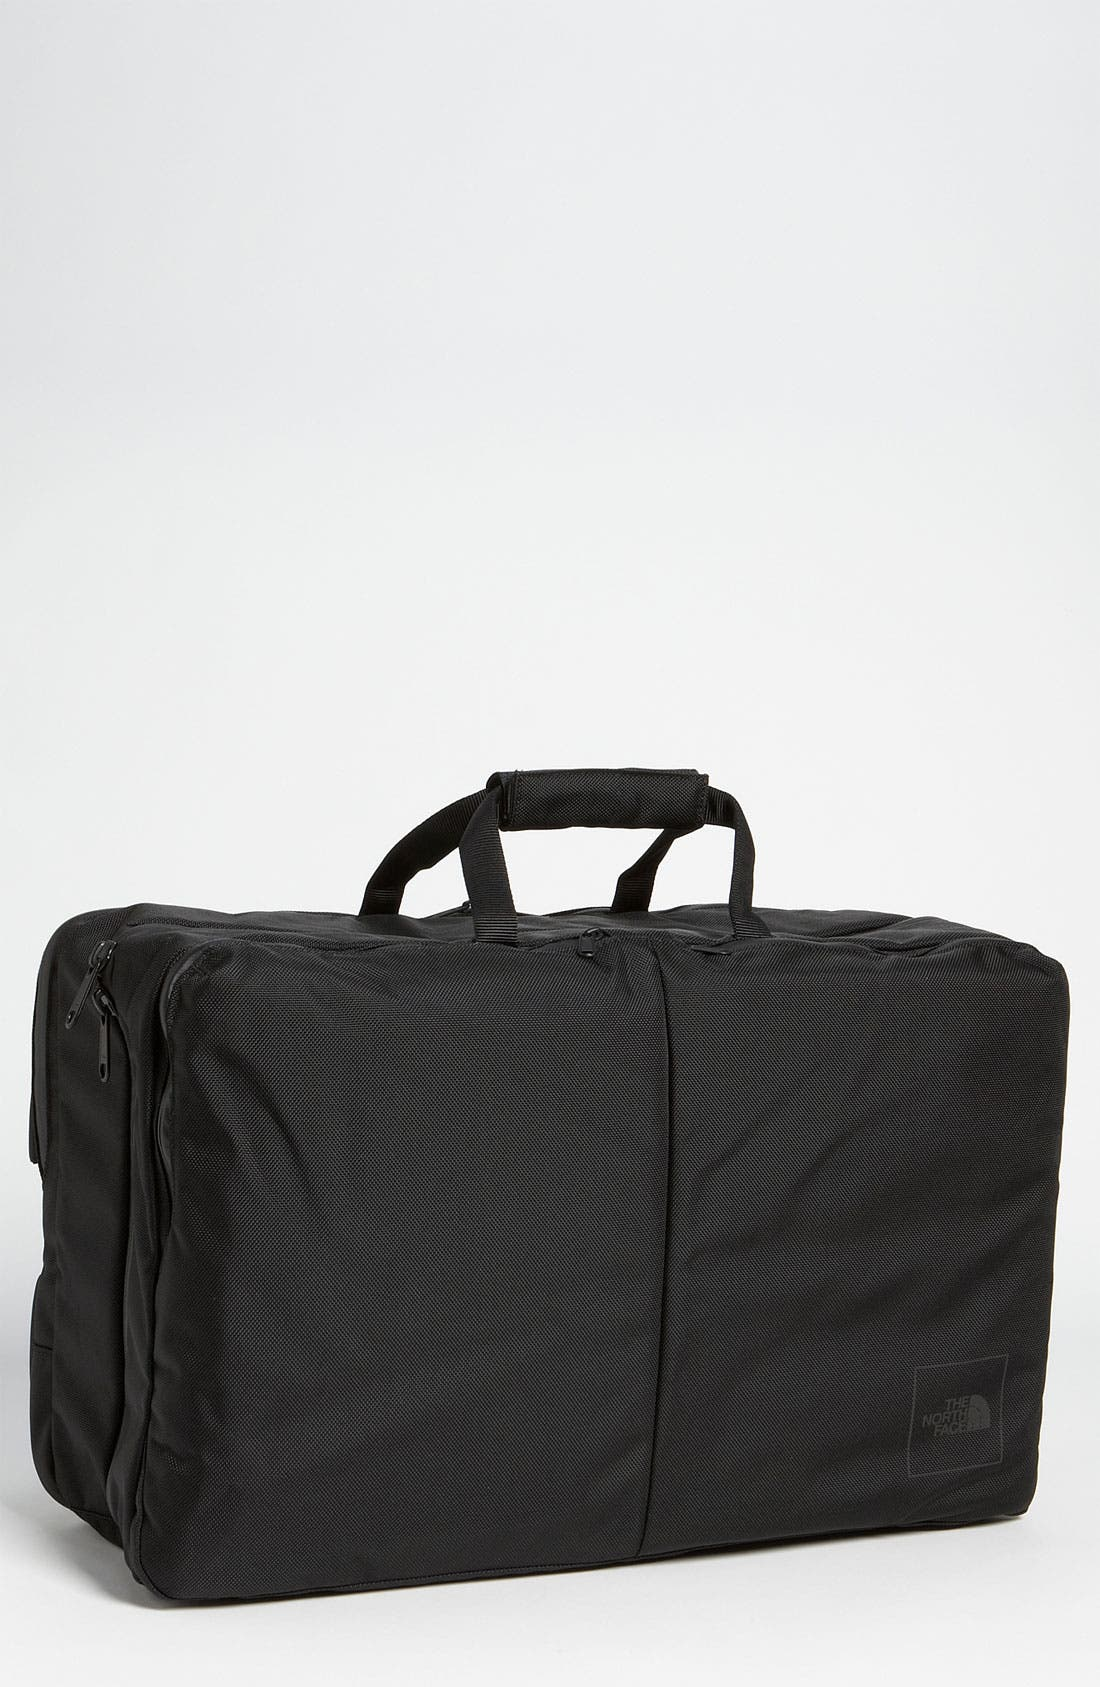 Main Image - The North Face 'Shuttle' Duffel Bag